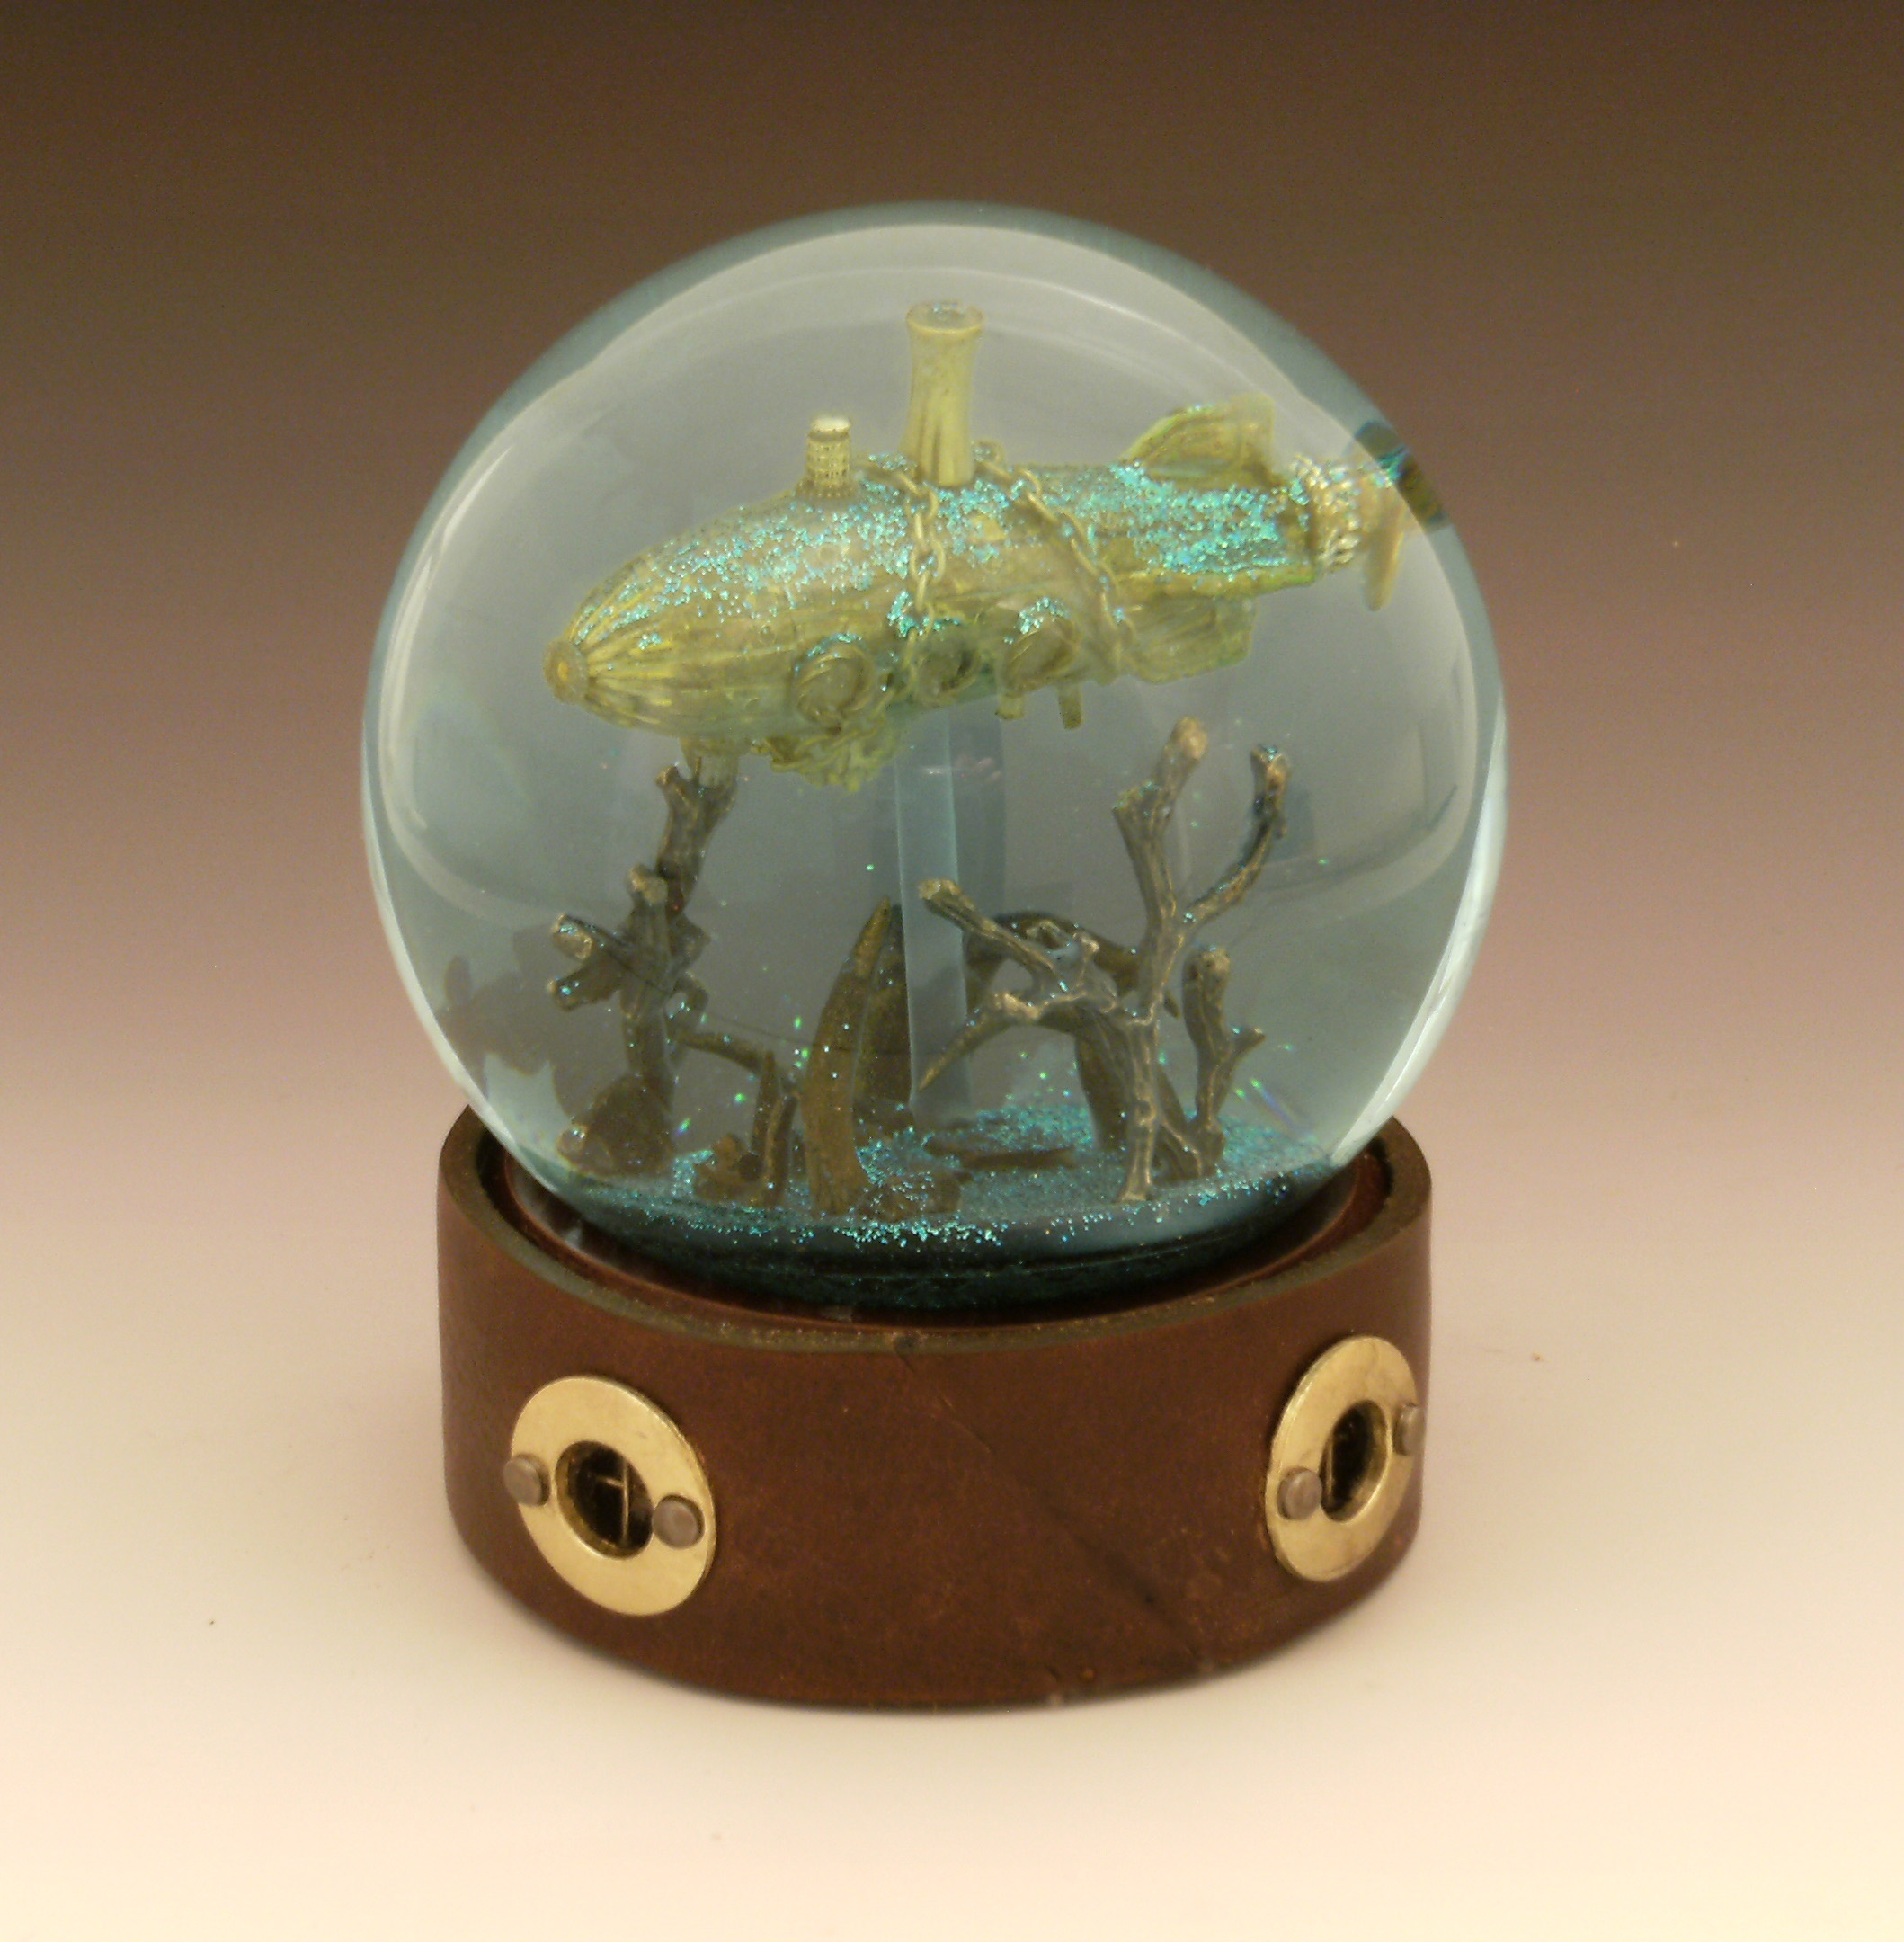 Below The Storm Submarine Snow Globe Camryn Forrest